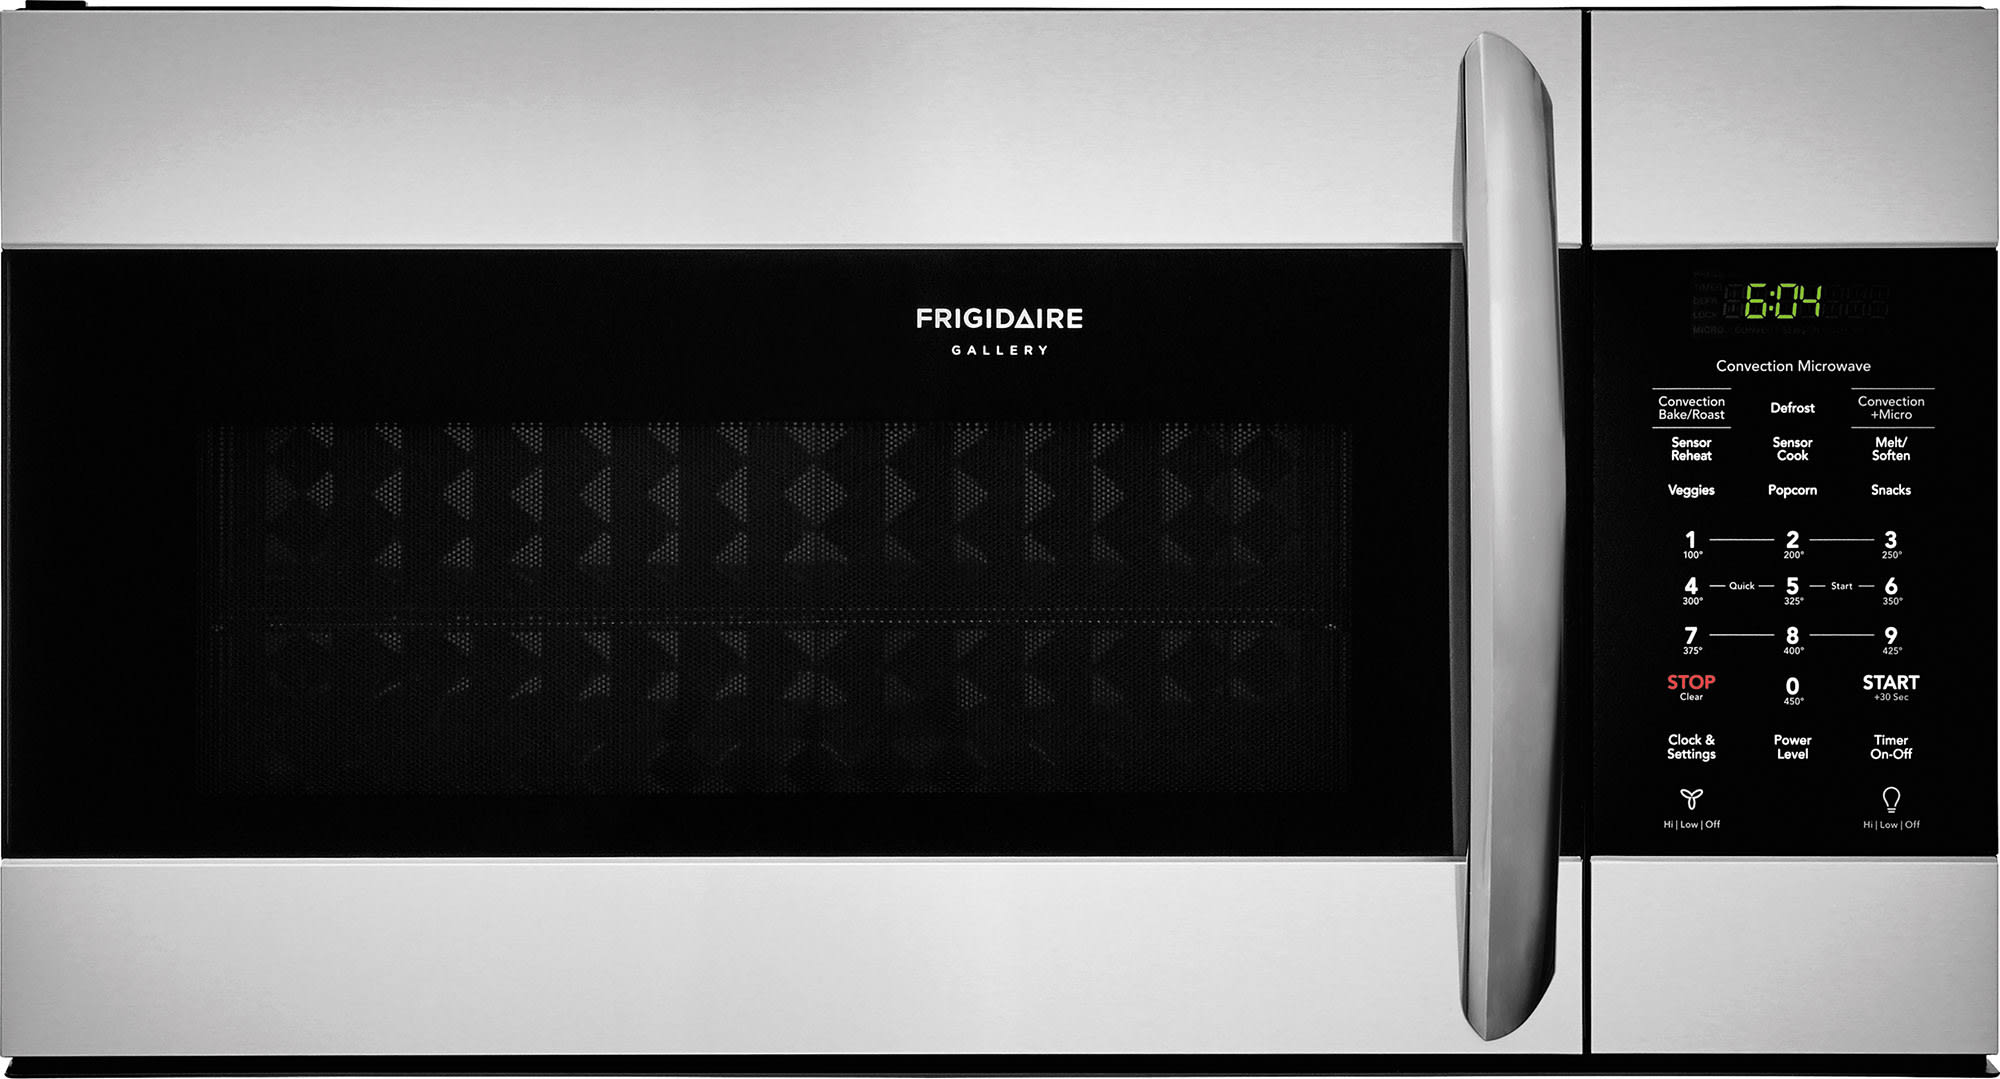 Frigidaire Fgis3065pf 30 Inch Slide In Induction Electric Range With Wiring Diagram Manual Kx 155 You Might Also Like